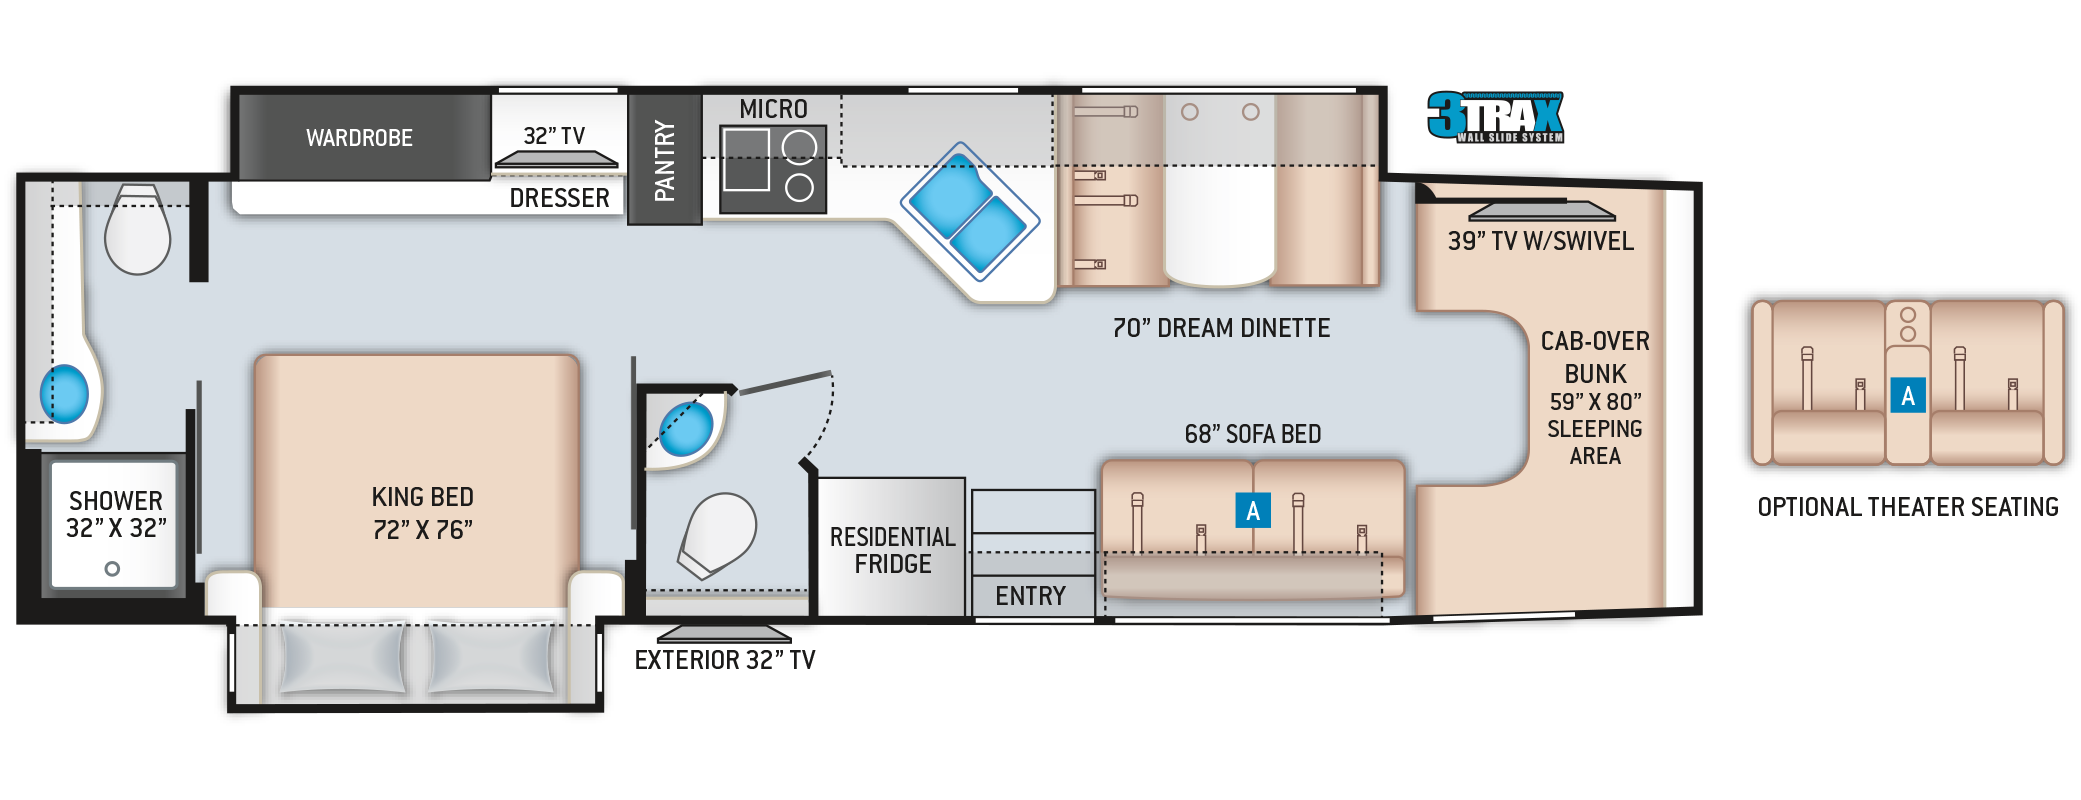 Omni Super C RV BH35 Floor Plan